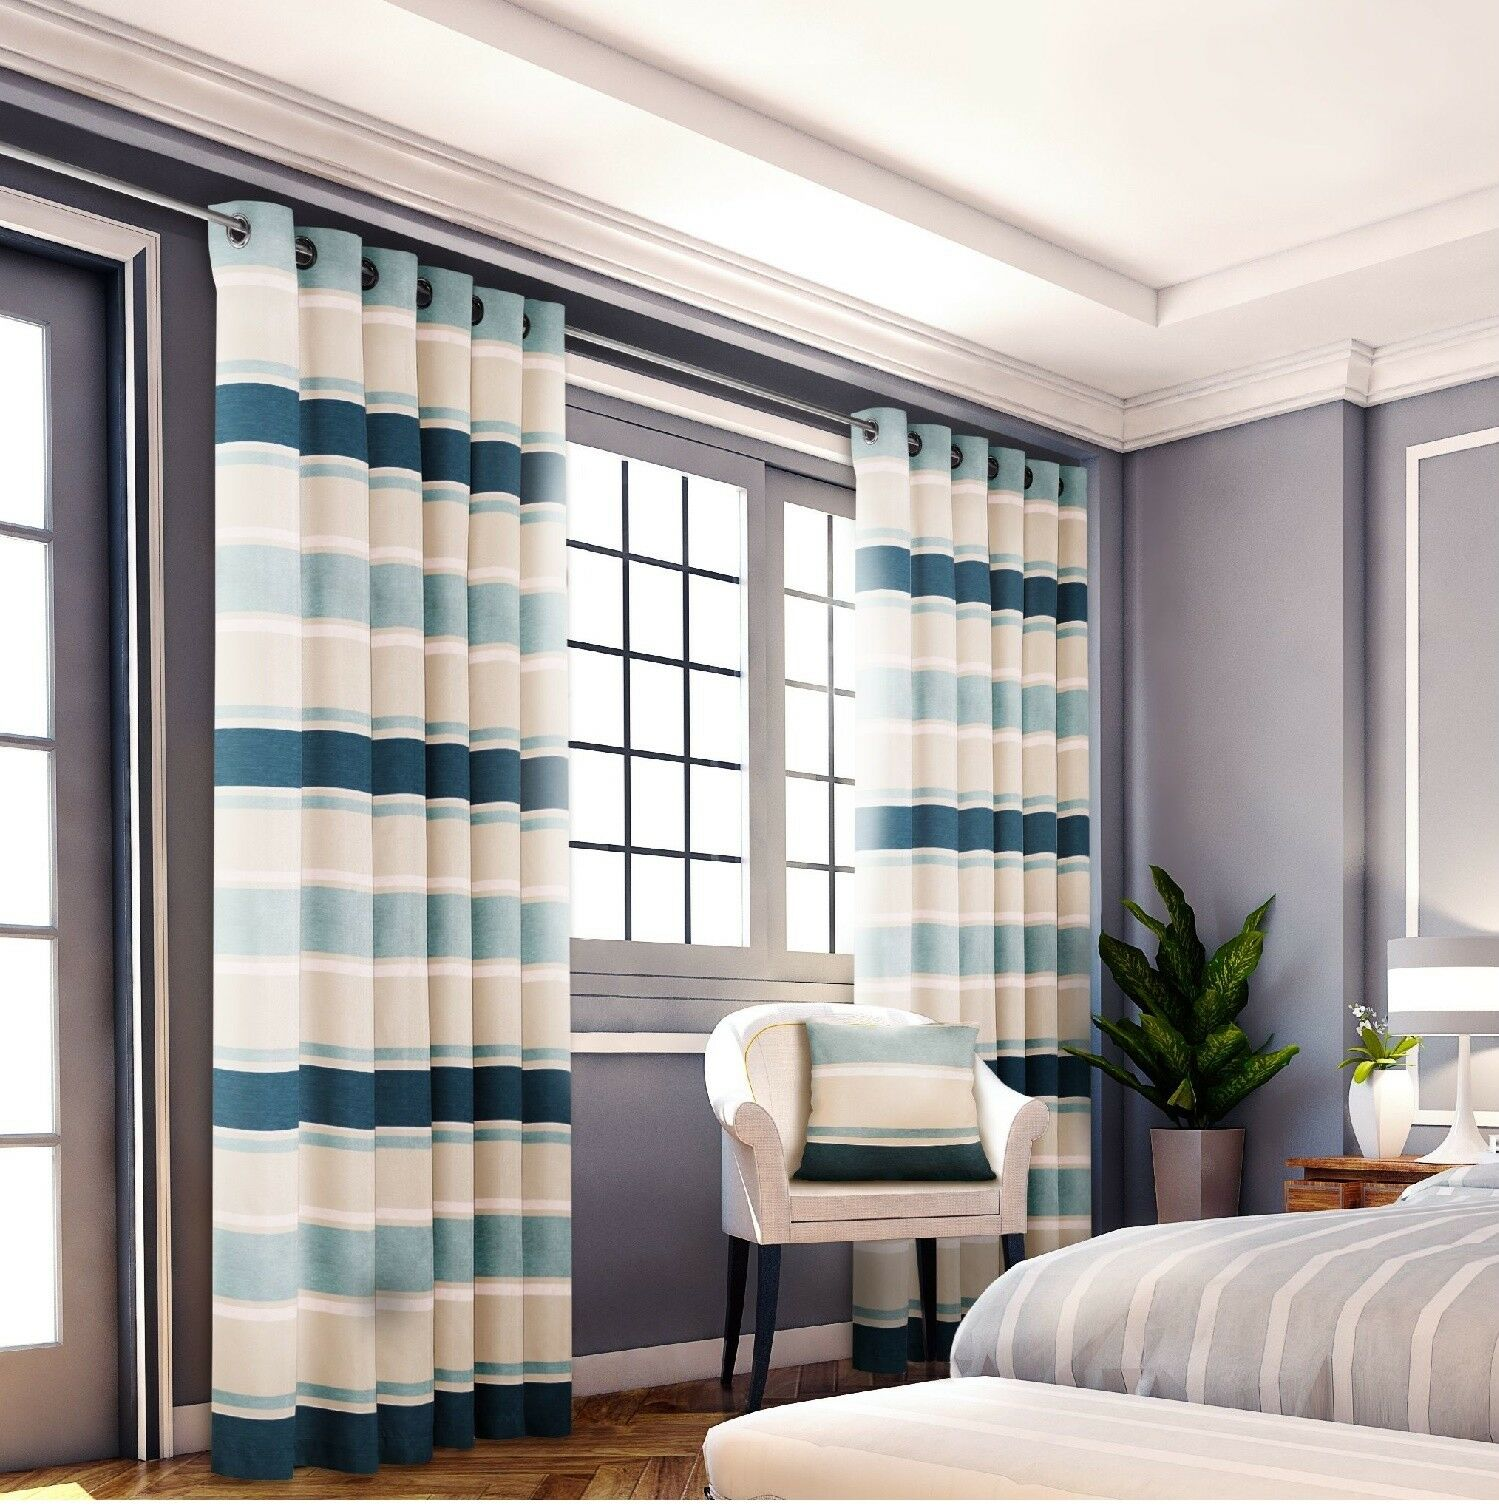 House Additions Philip Lined Eyelet Curtain Panel, Teal, 167cm x 229cm